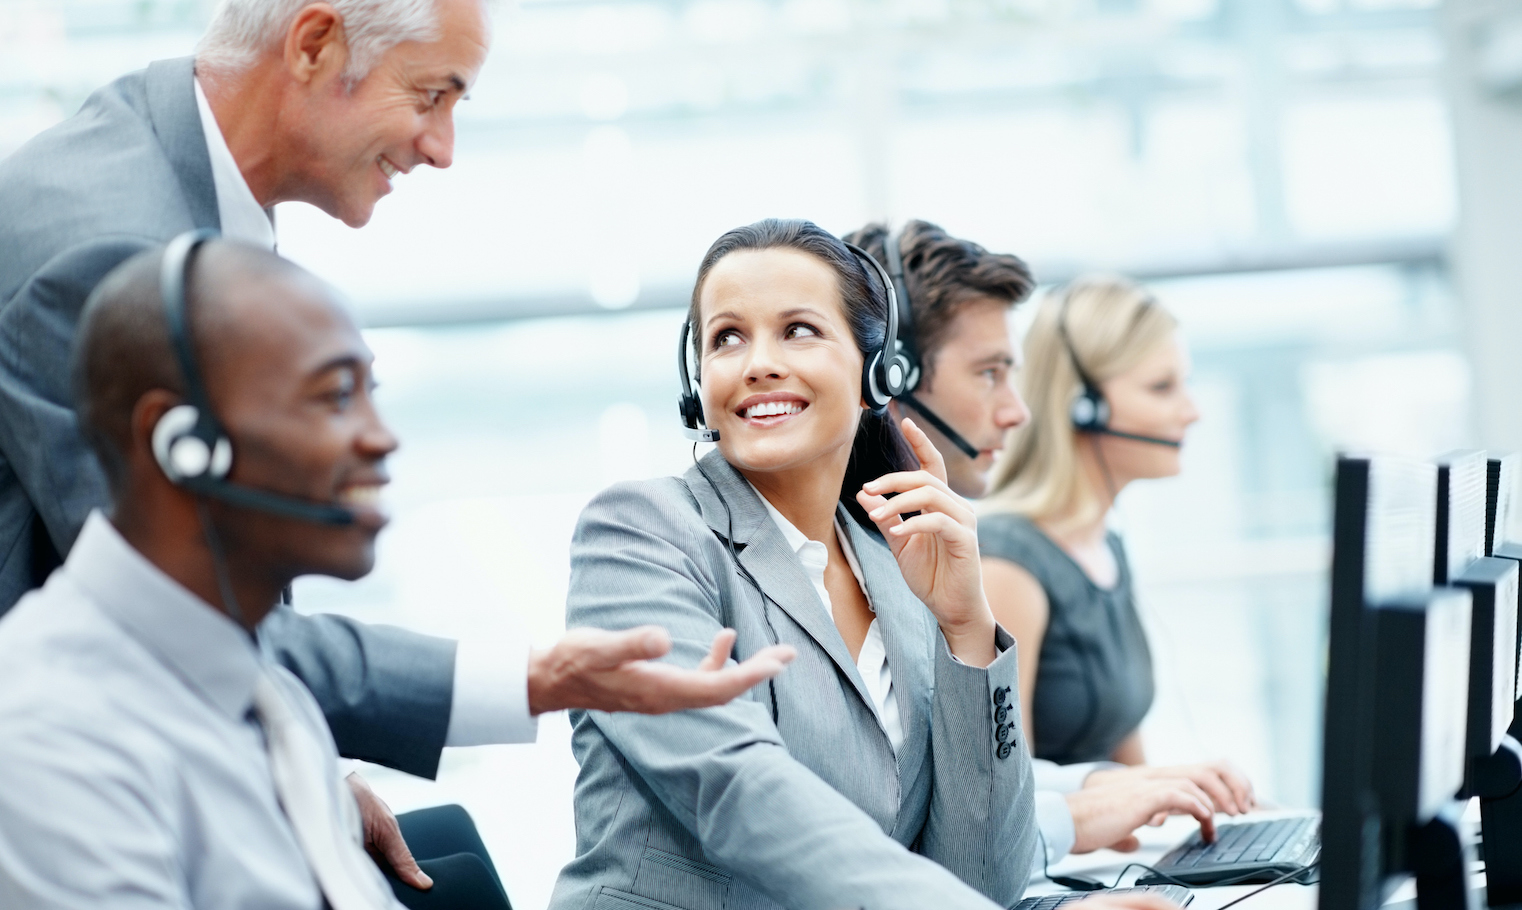 Professional IVR voice prompt recordings now available